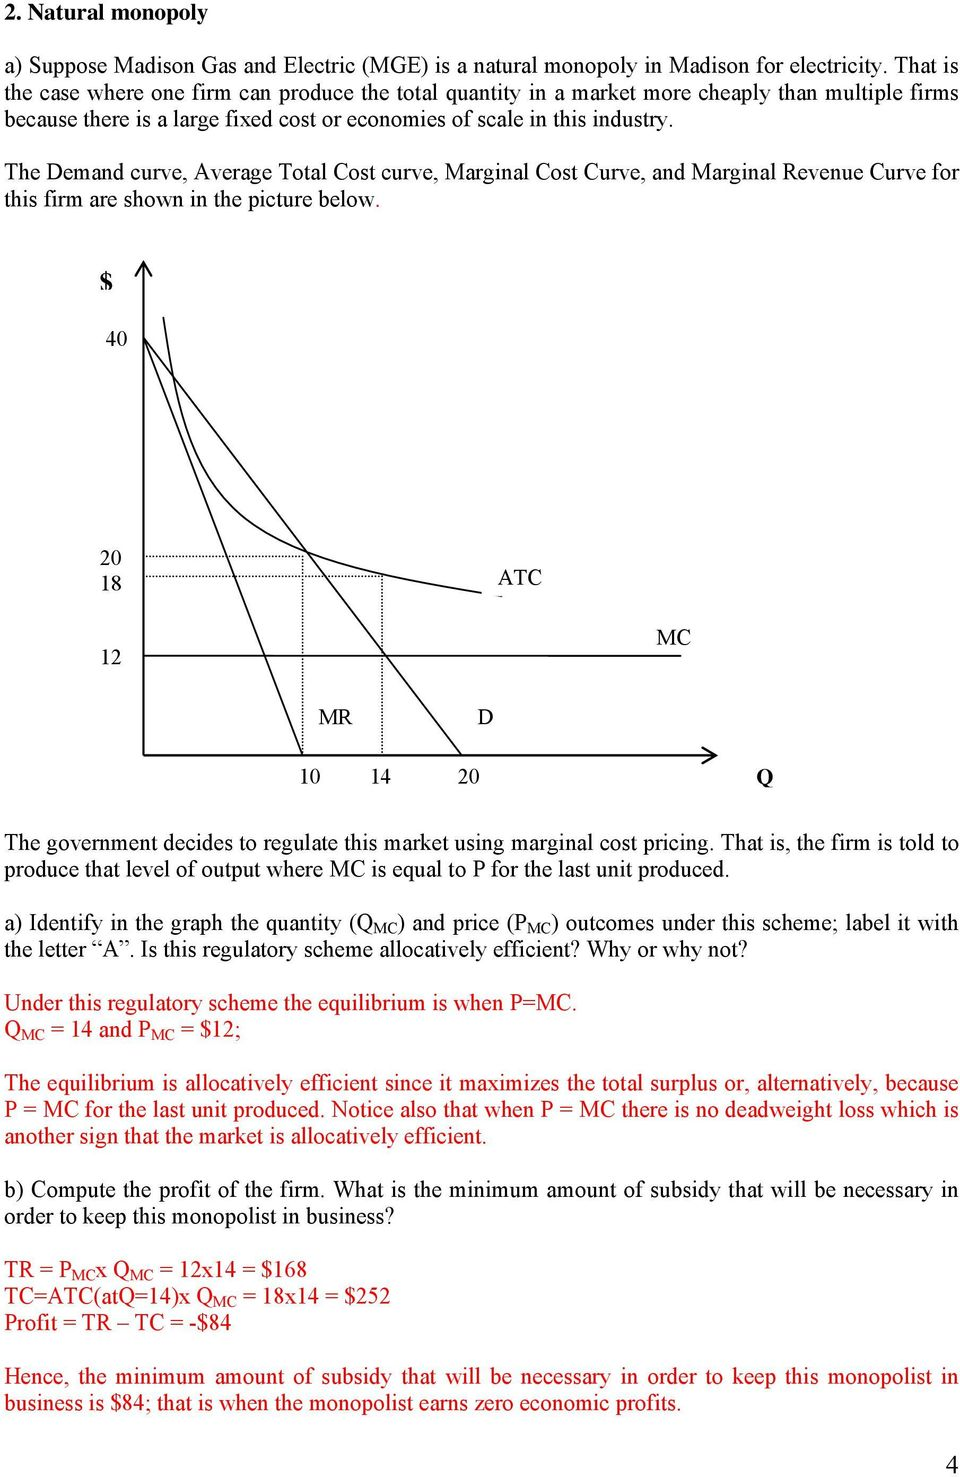 The Demand curve, Average Total Cost curve, Marginal Cost Curve, and Marginal Revenue Curve for this firm are shown in the picture below.